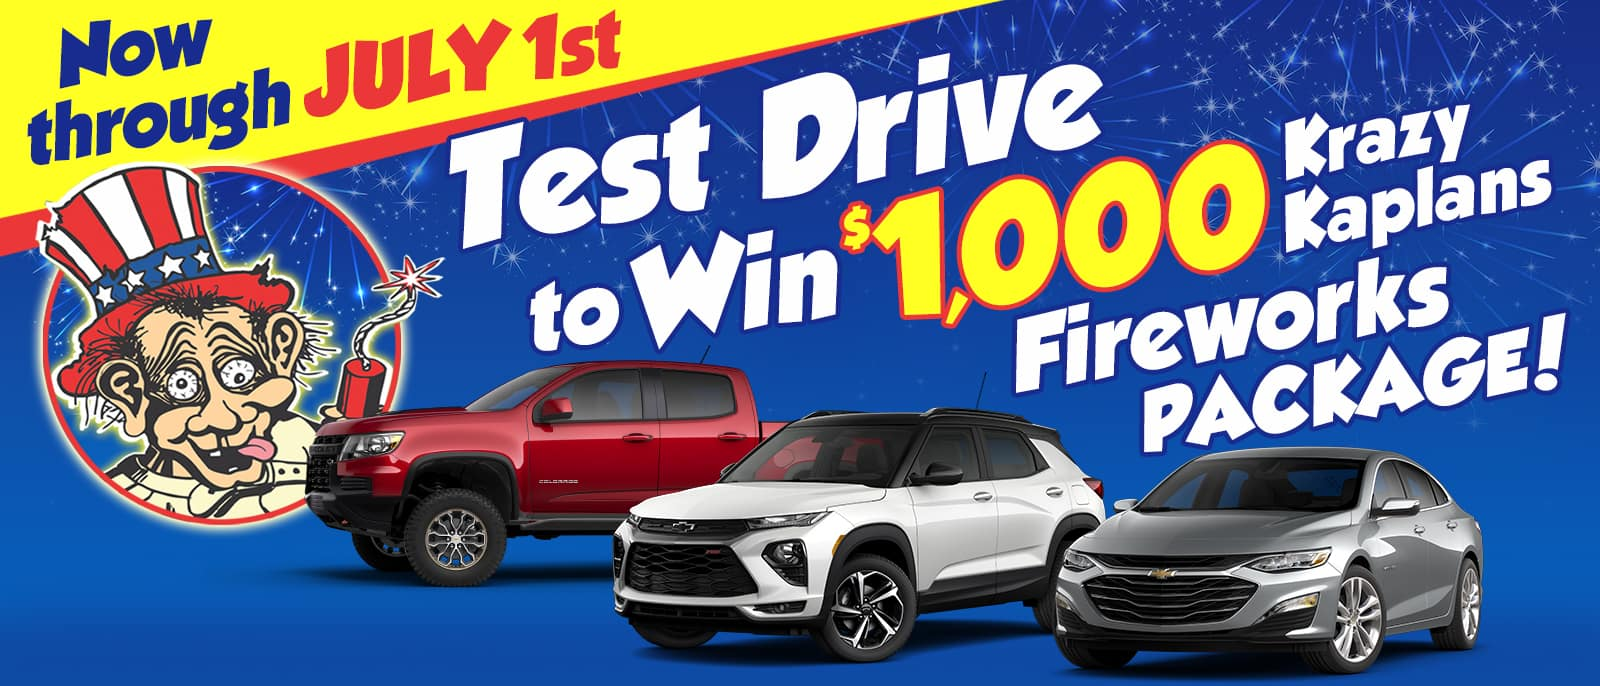 Test Drive any new or used car and be entered to win a $1000 fireworks package!